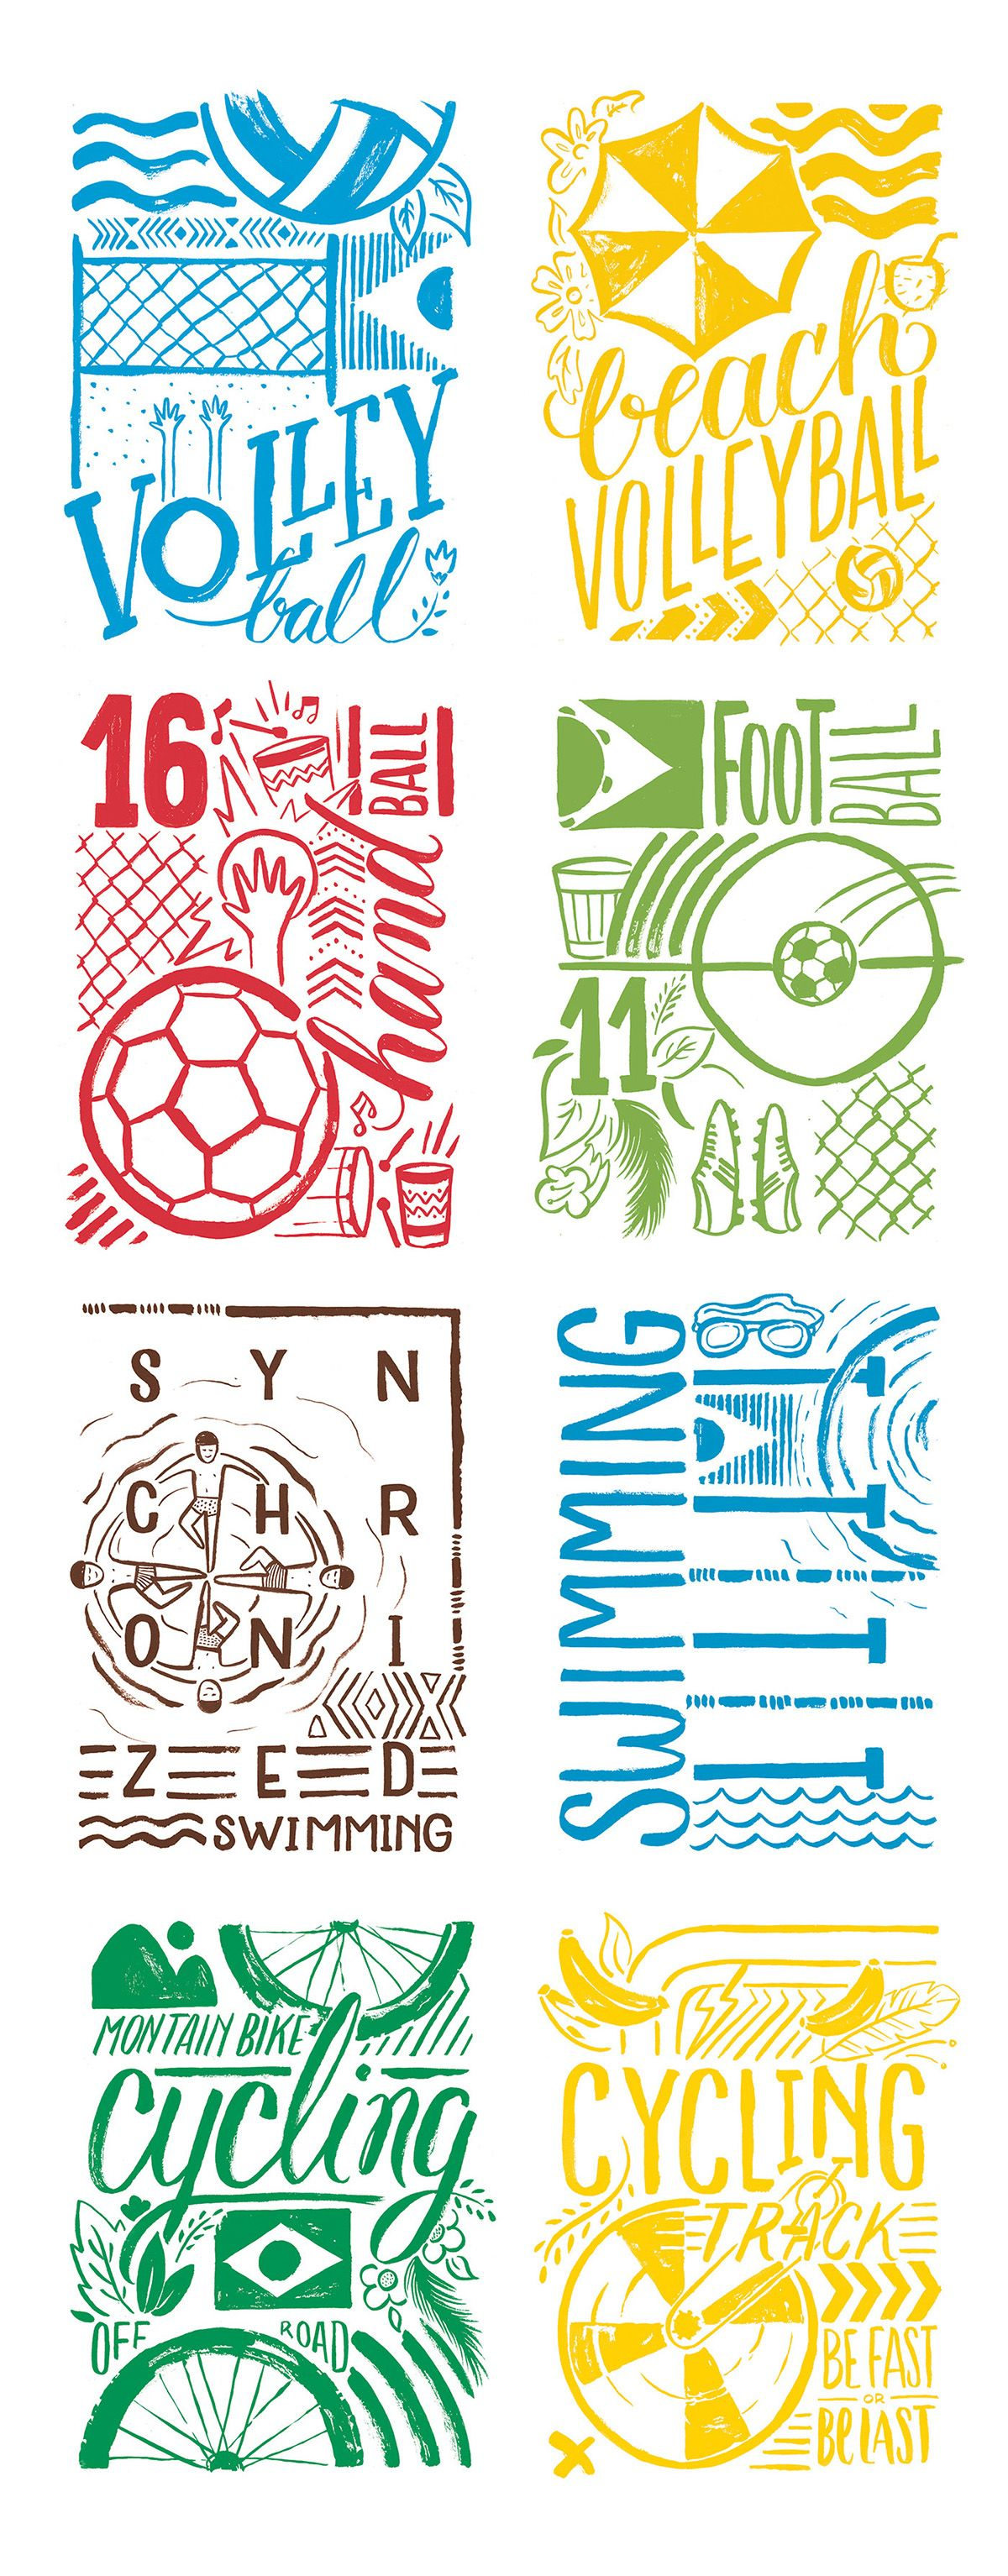 RIO 2016 + WSGN on Behance   bicicletas   Poster, Graphic illustration, Sports graphics